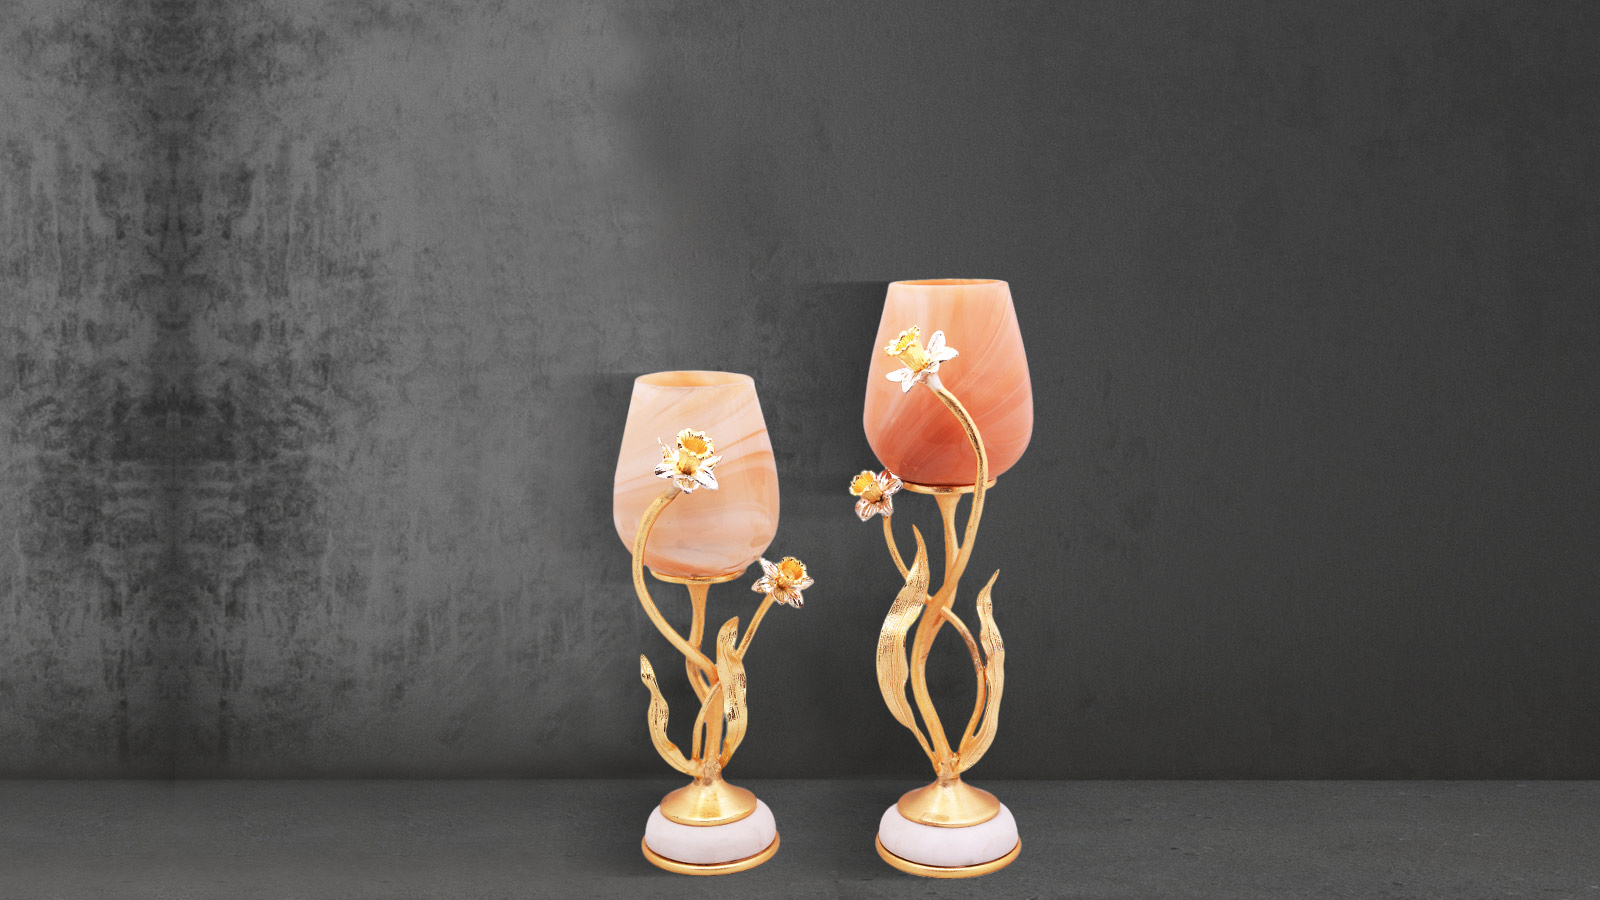 table lamps, bed lamps, office lamps, bedroom lamps,glass, brass, luxury lamps